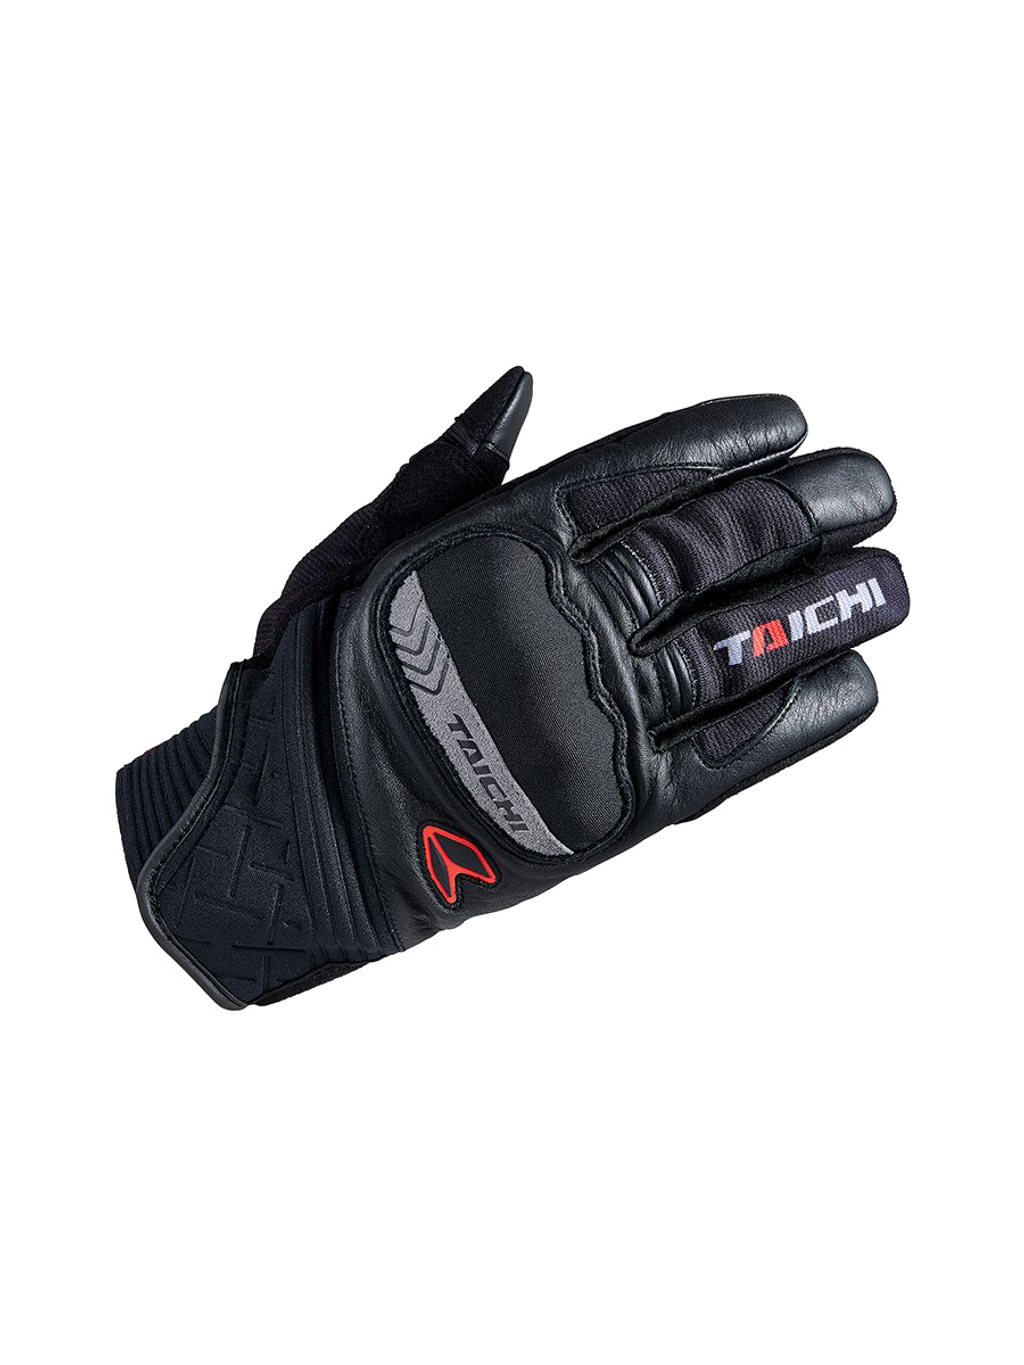 45 RS TAICHI RST637 SCOUT WINTER GLOVE black red.png